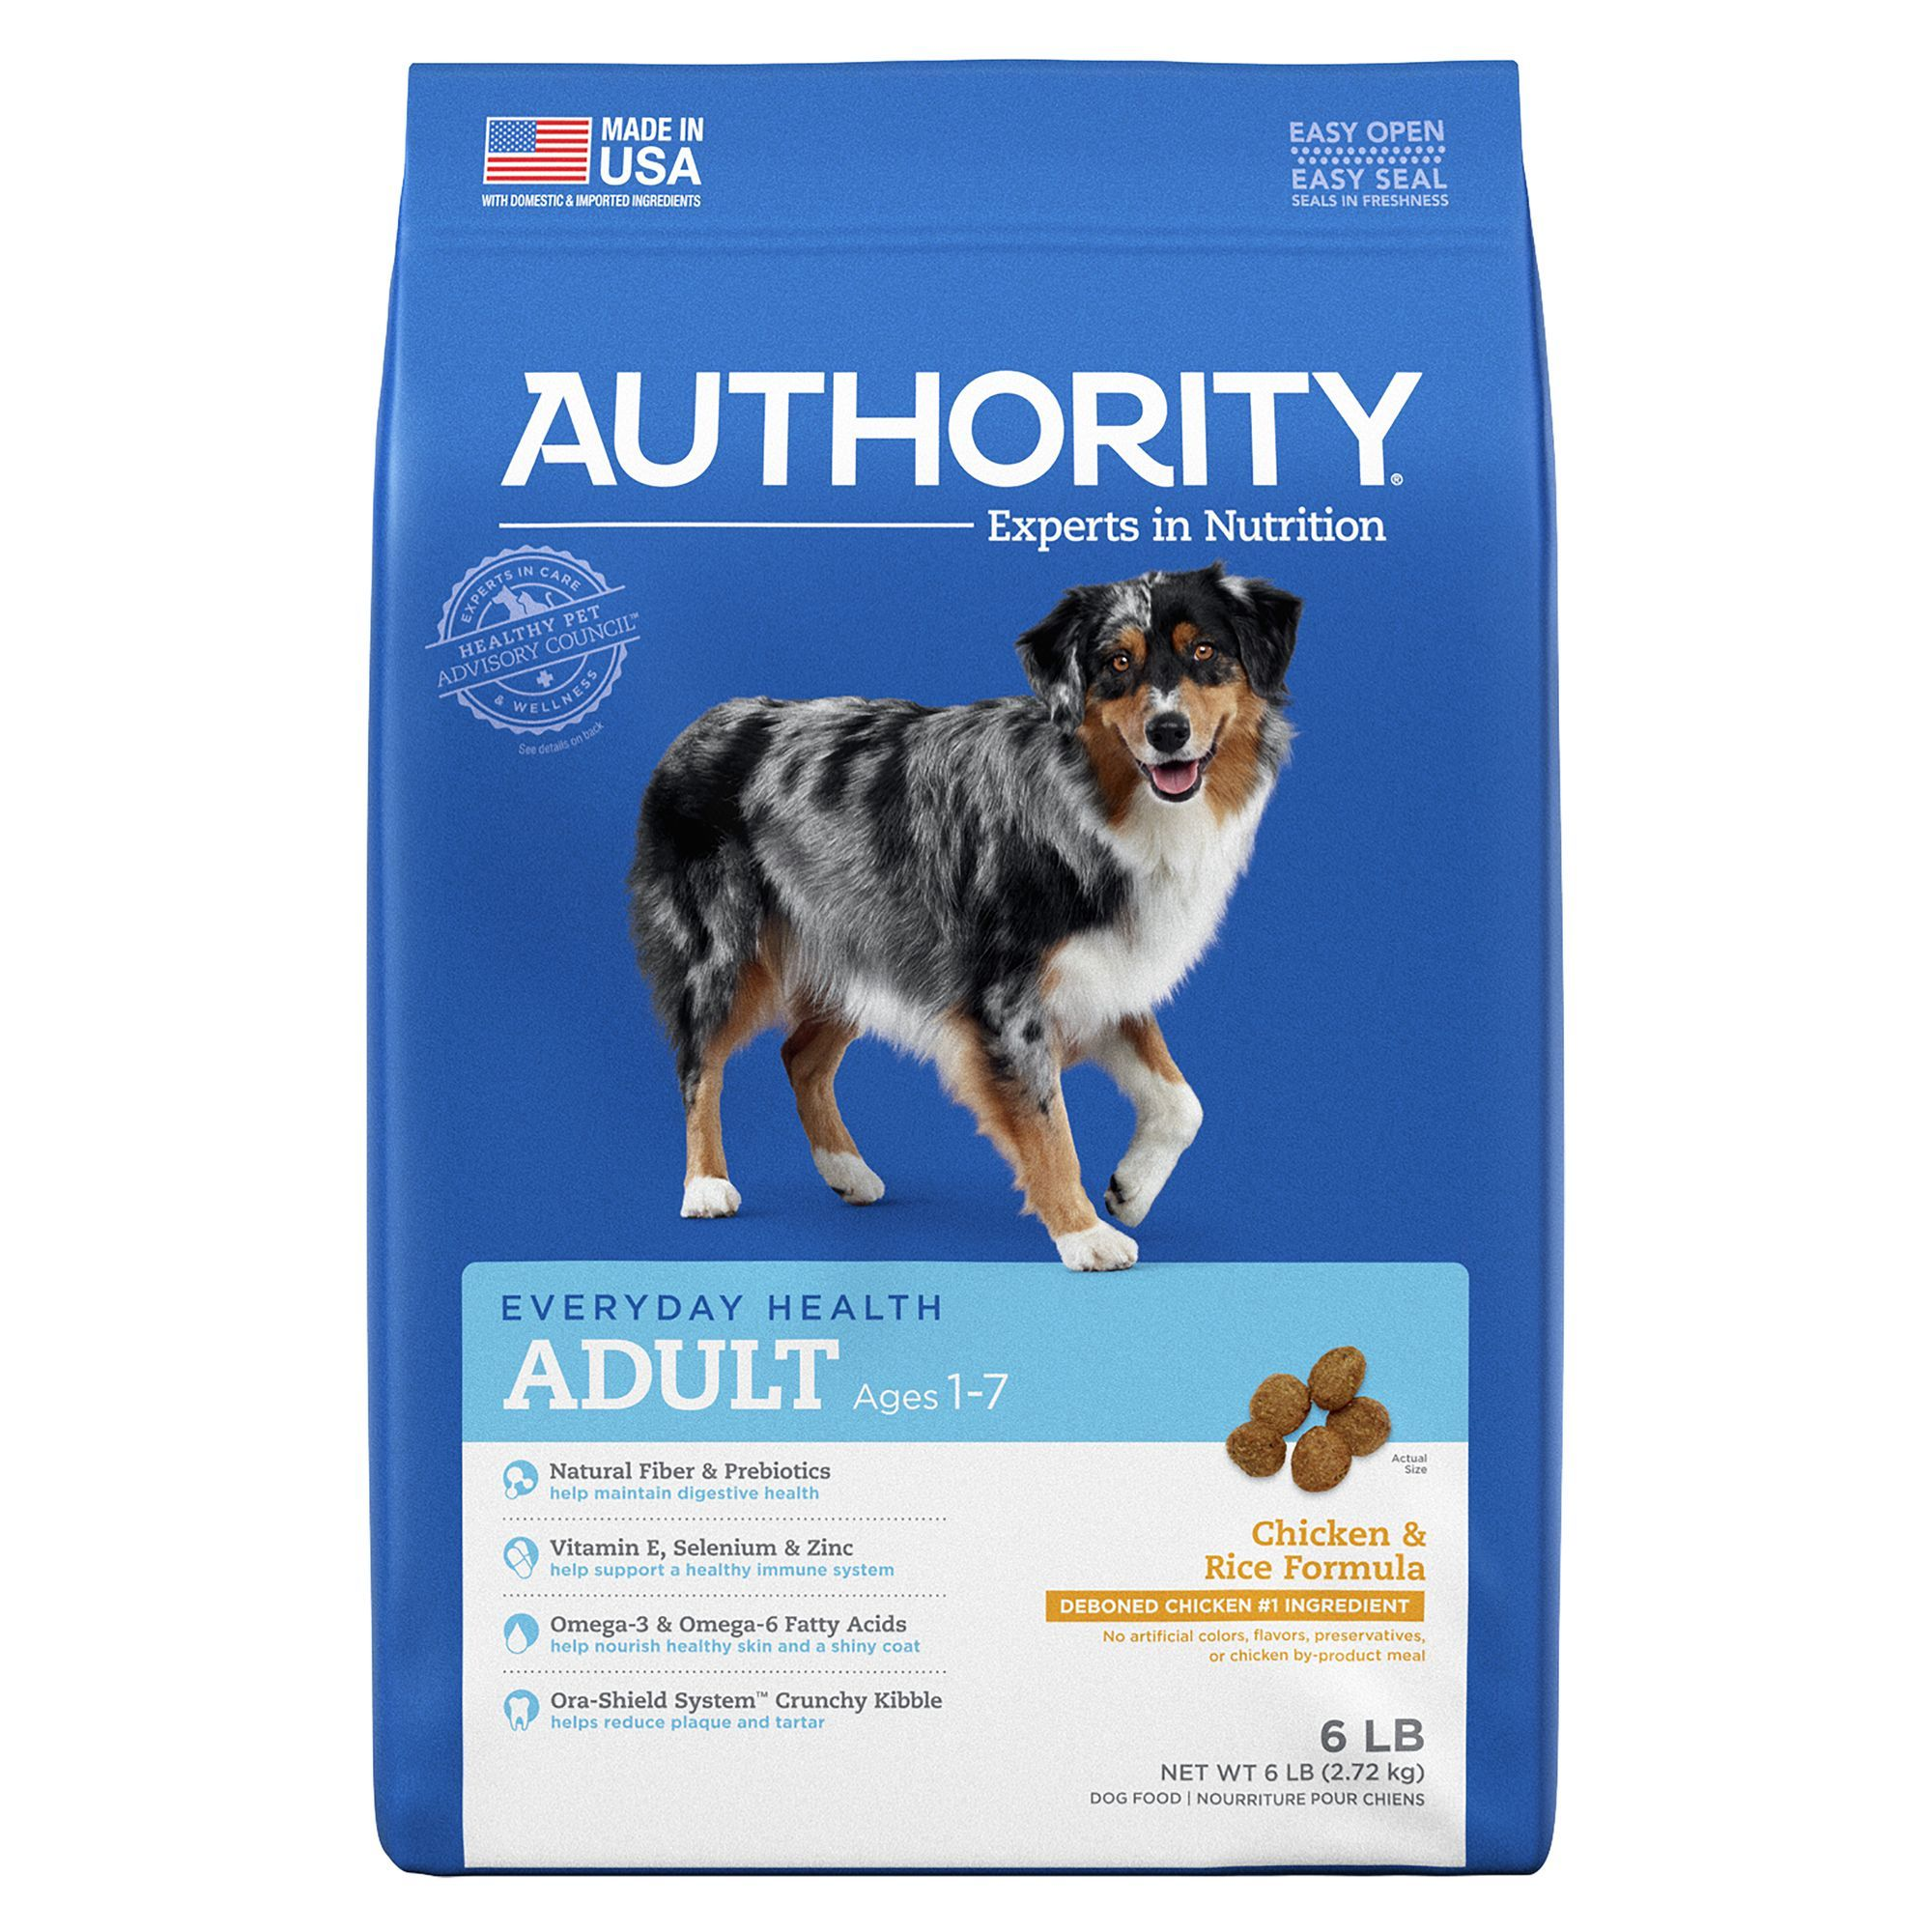 Authority Adult Dog Food Chicken and Rice size 6 Lb